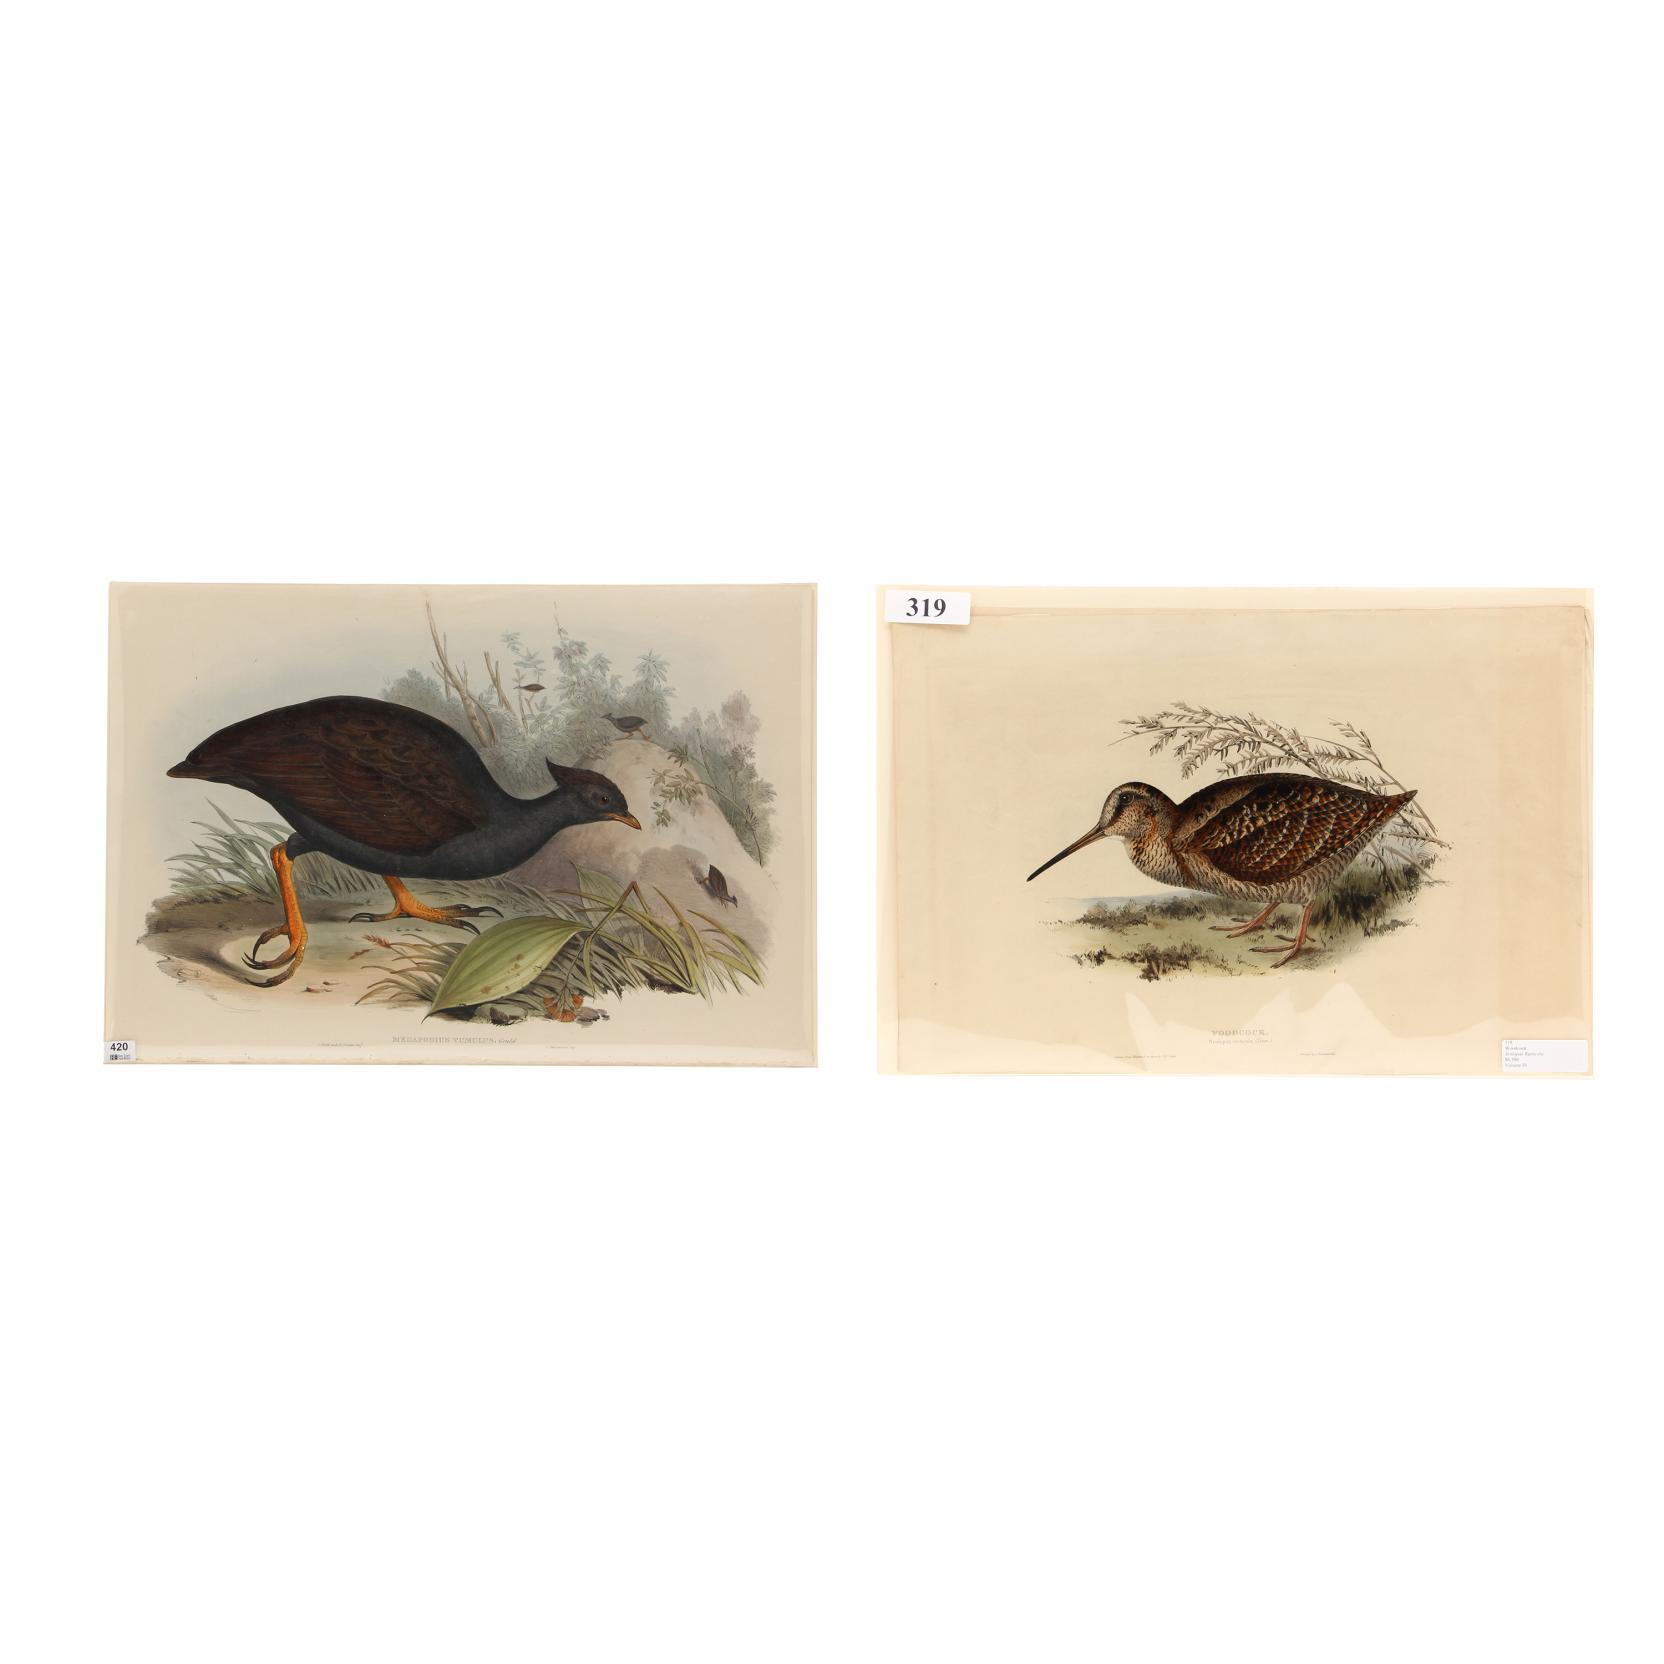 j-e-gould-h-c-richter-british-19th-century-two-prints-from-john-gould-s-i-the-birds-of-europe-i